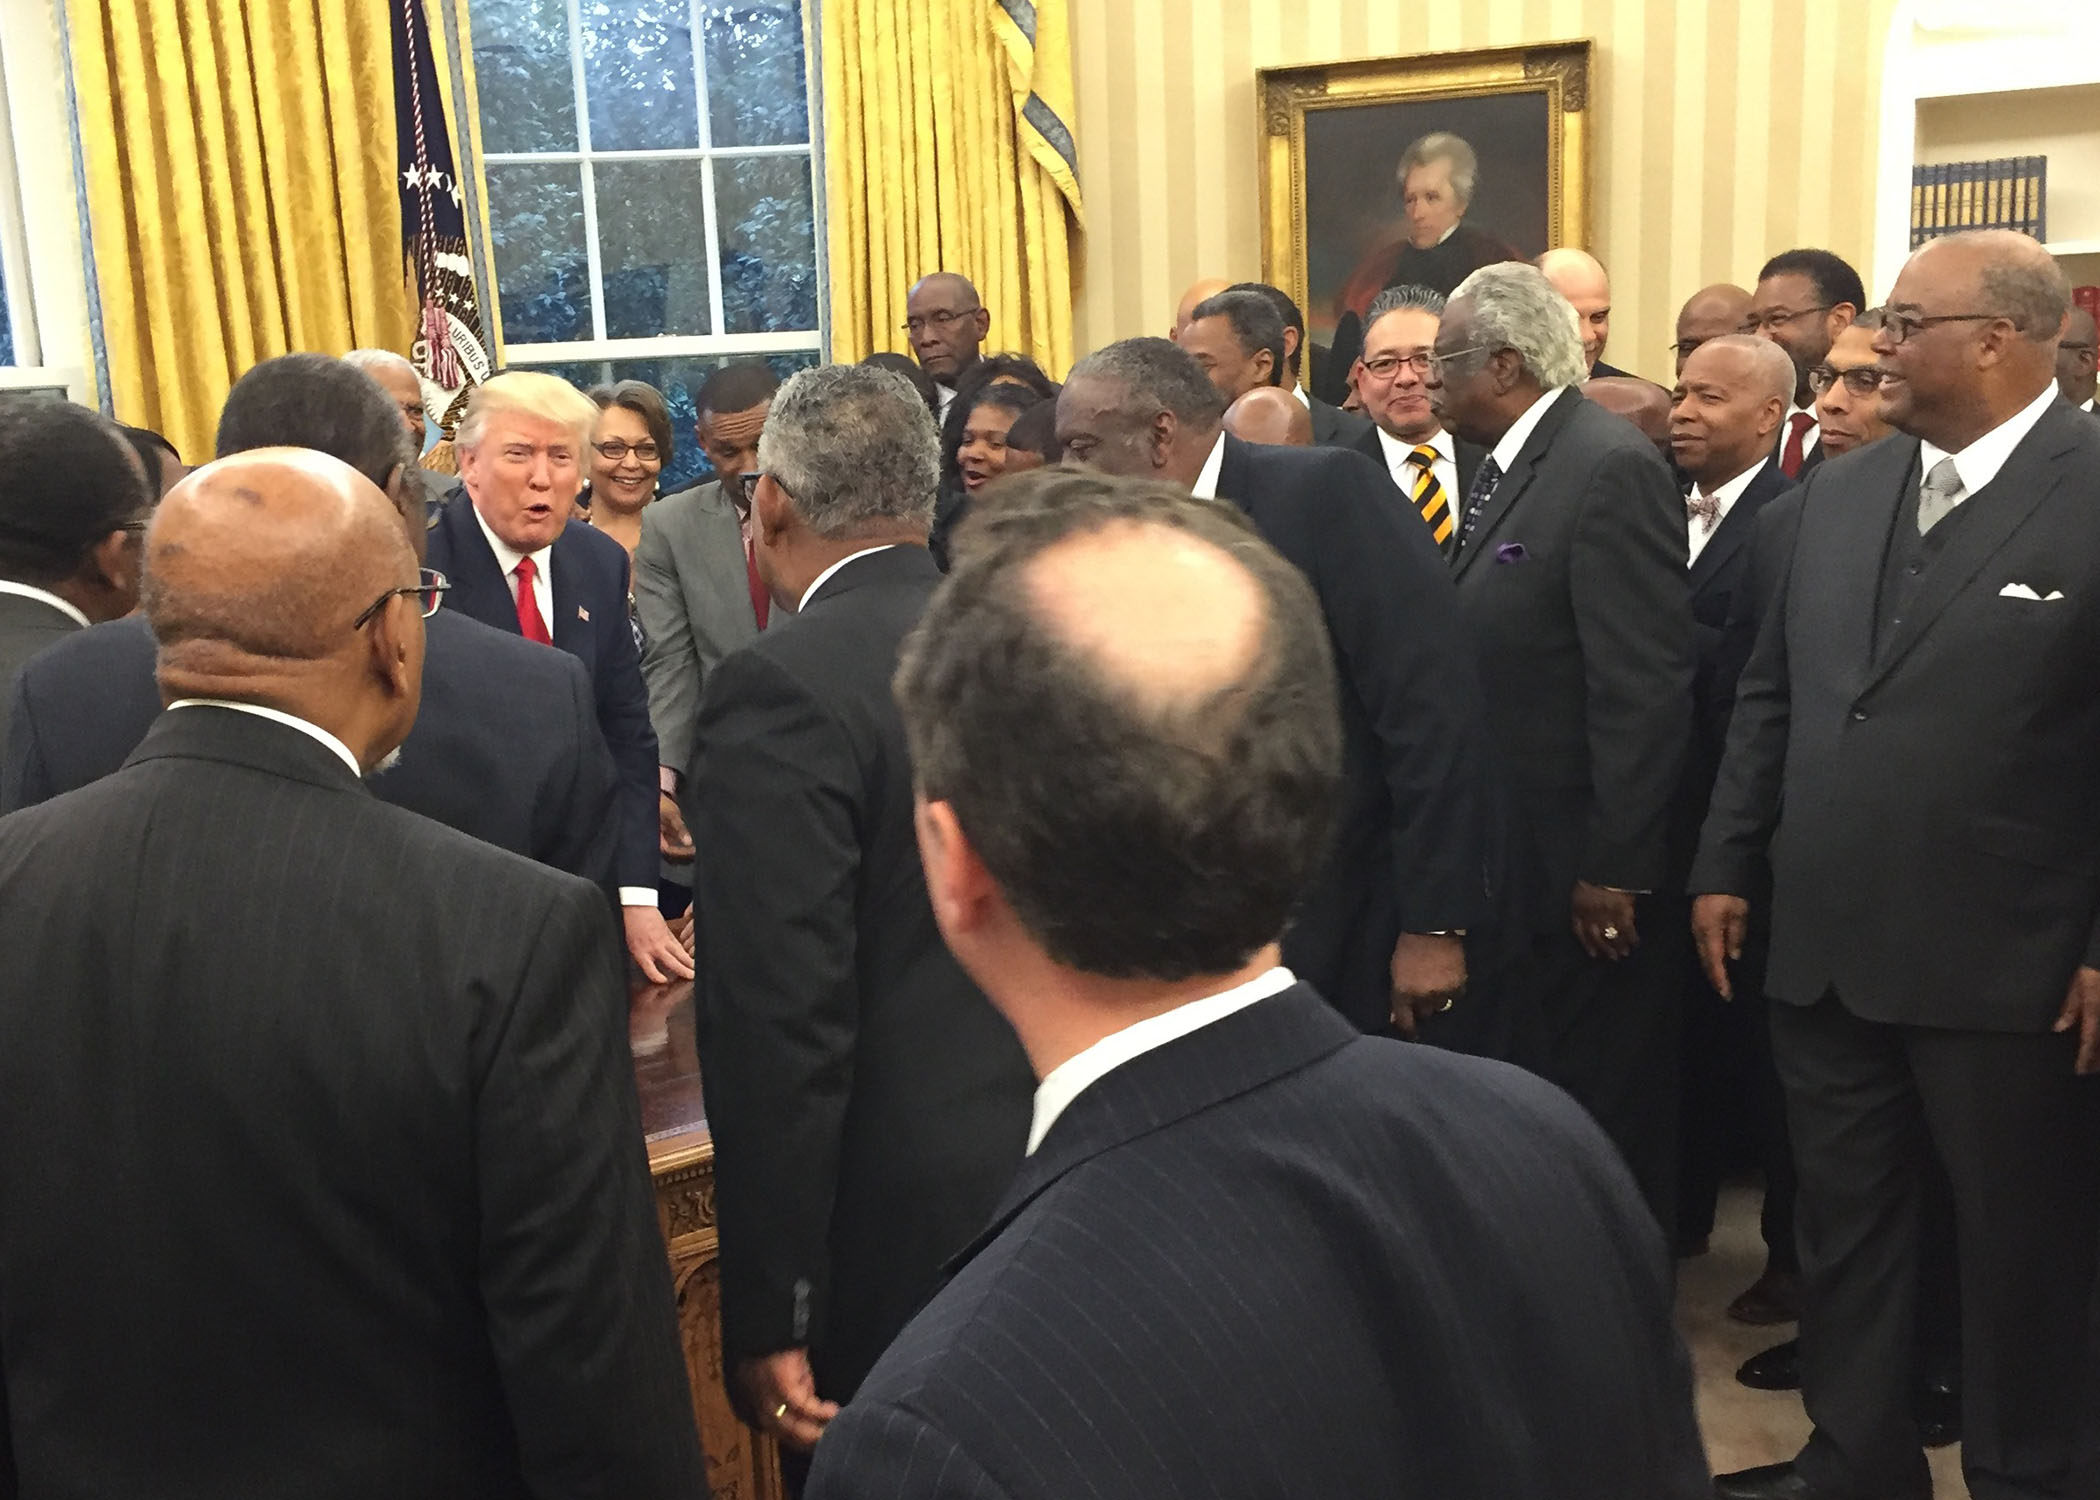 President Donald Trump meets with the presidents and chancellors from the nation's Historically Black Colleges and Universities. (Lauren Victoria Burke, NNPA)